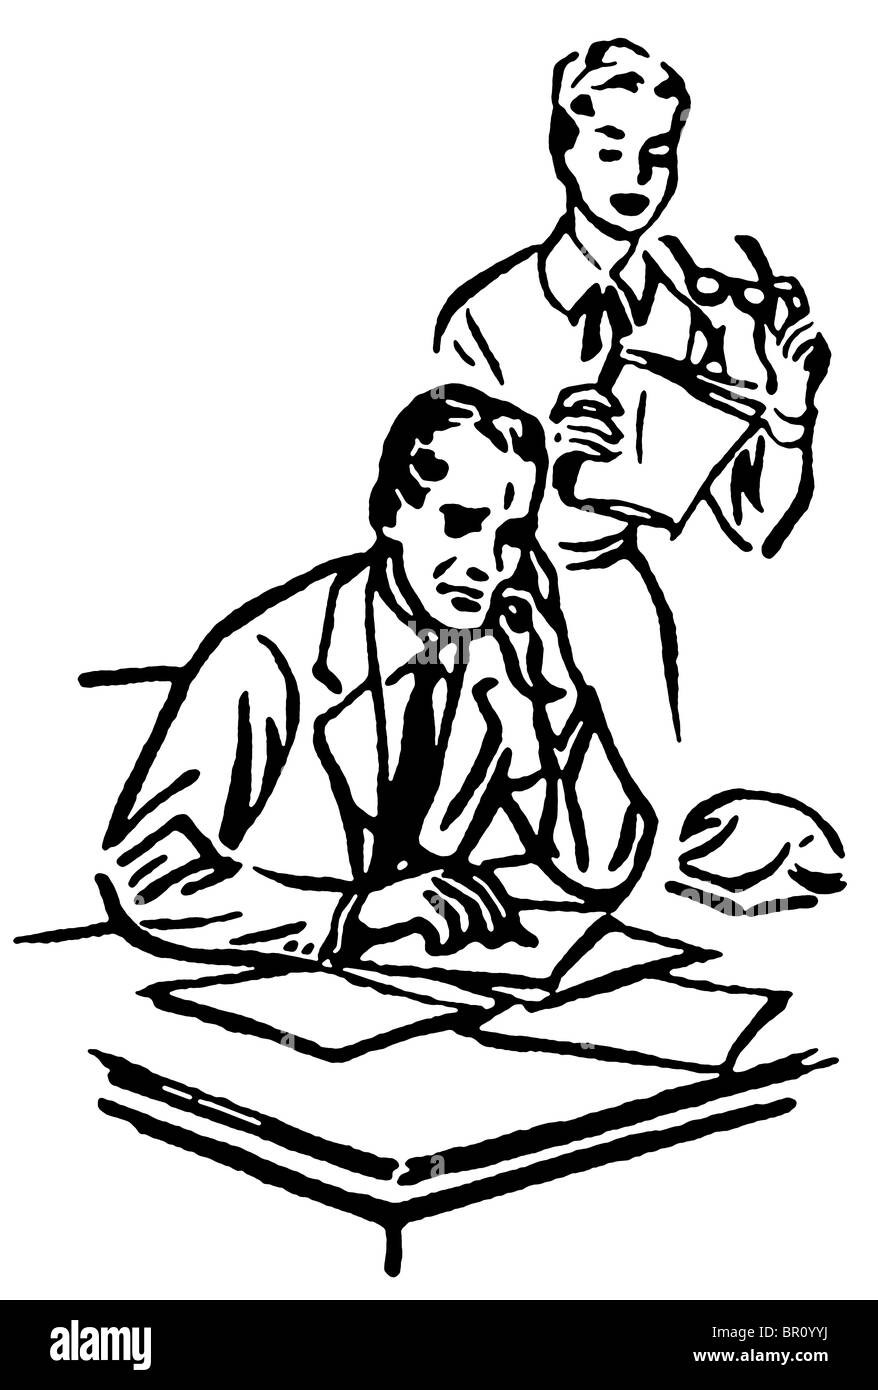 A black and white version of a businessman working at his desk with his secretary standing over him - Stock Image